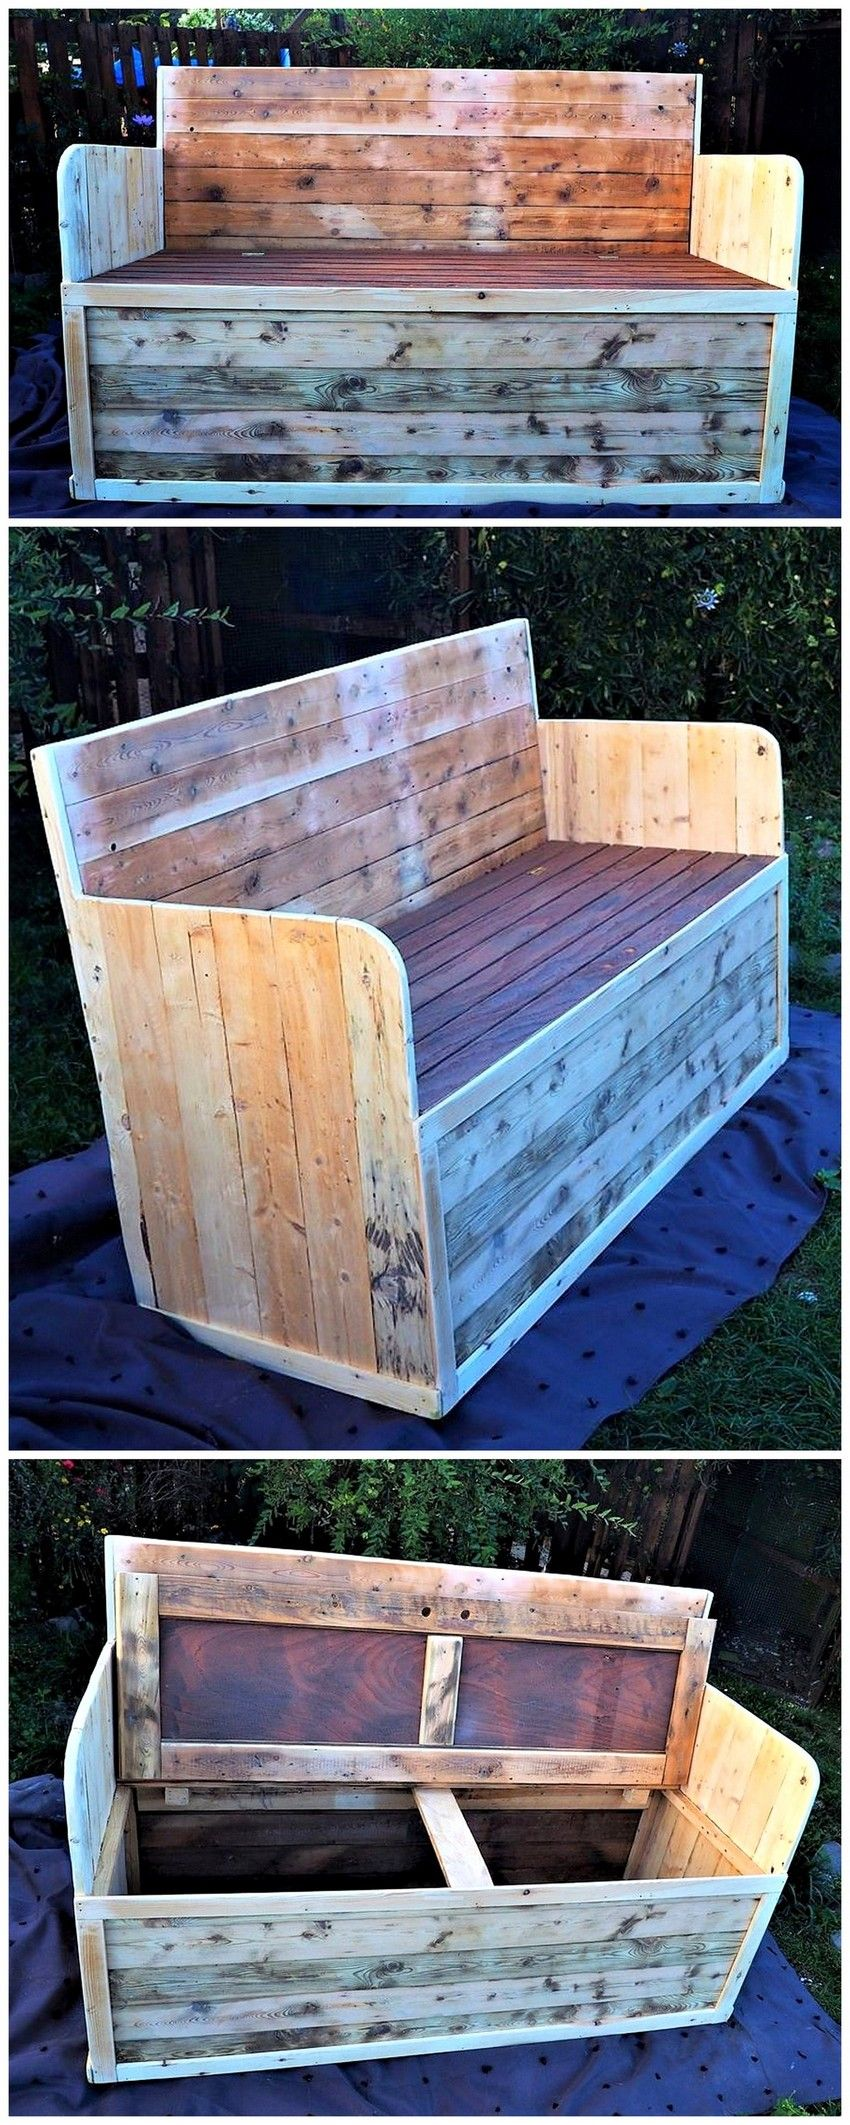 Easy And Creative Diy Pallet Ideas Easy Pallet Projects And Diy Wood Pallets Ideas Pallet Projects Easy Pallet Ideas Easy Wood Pallets